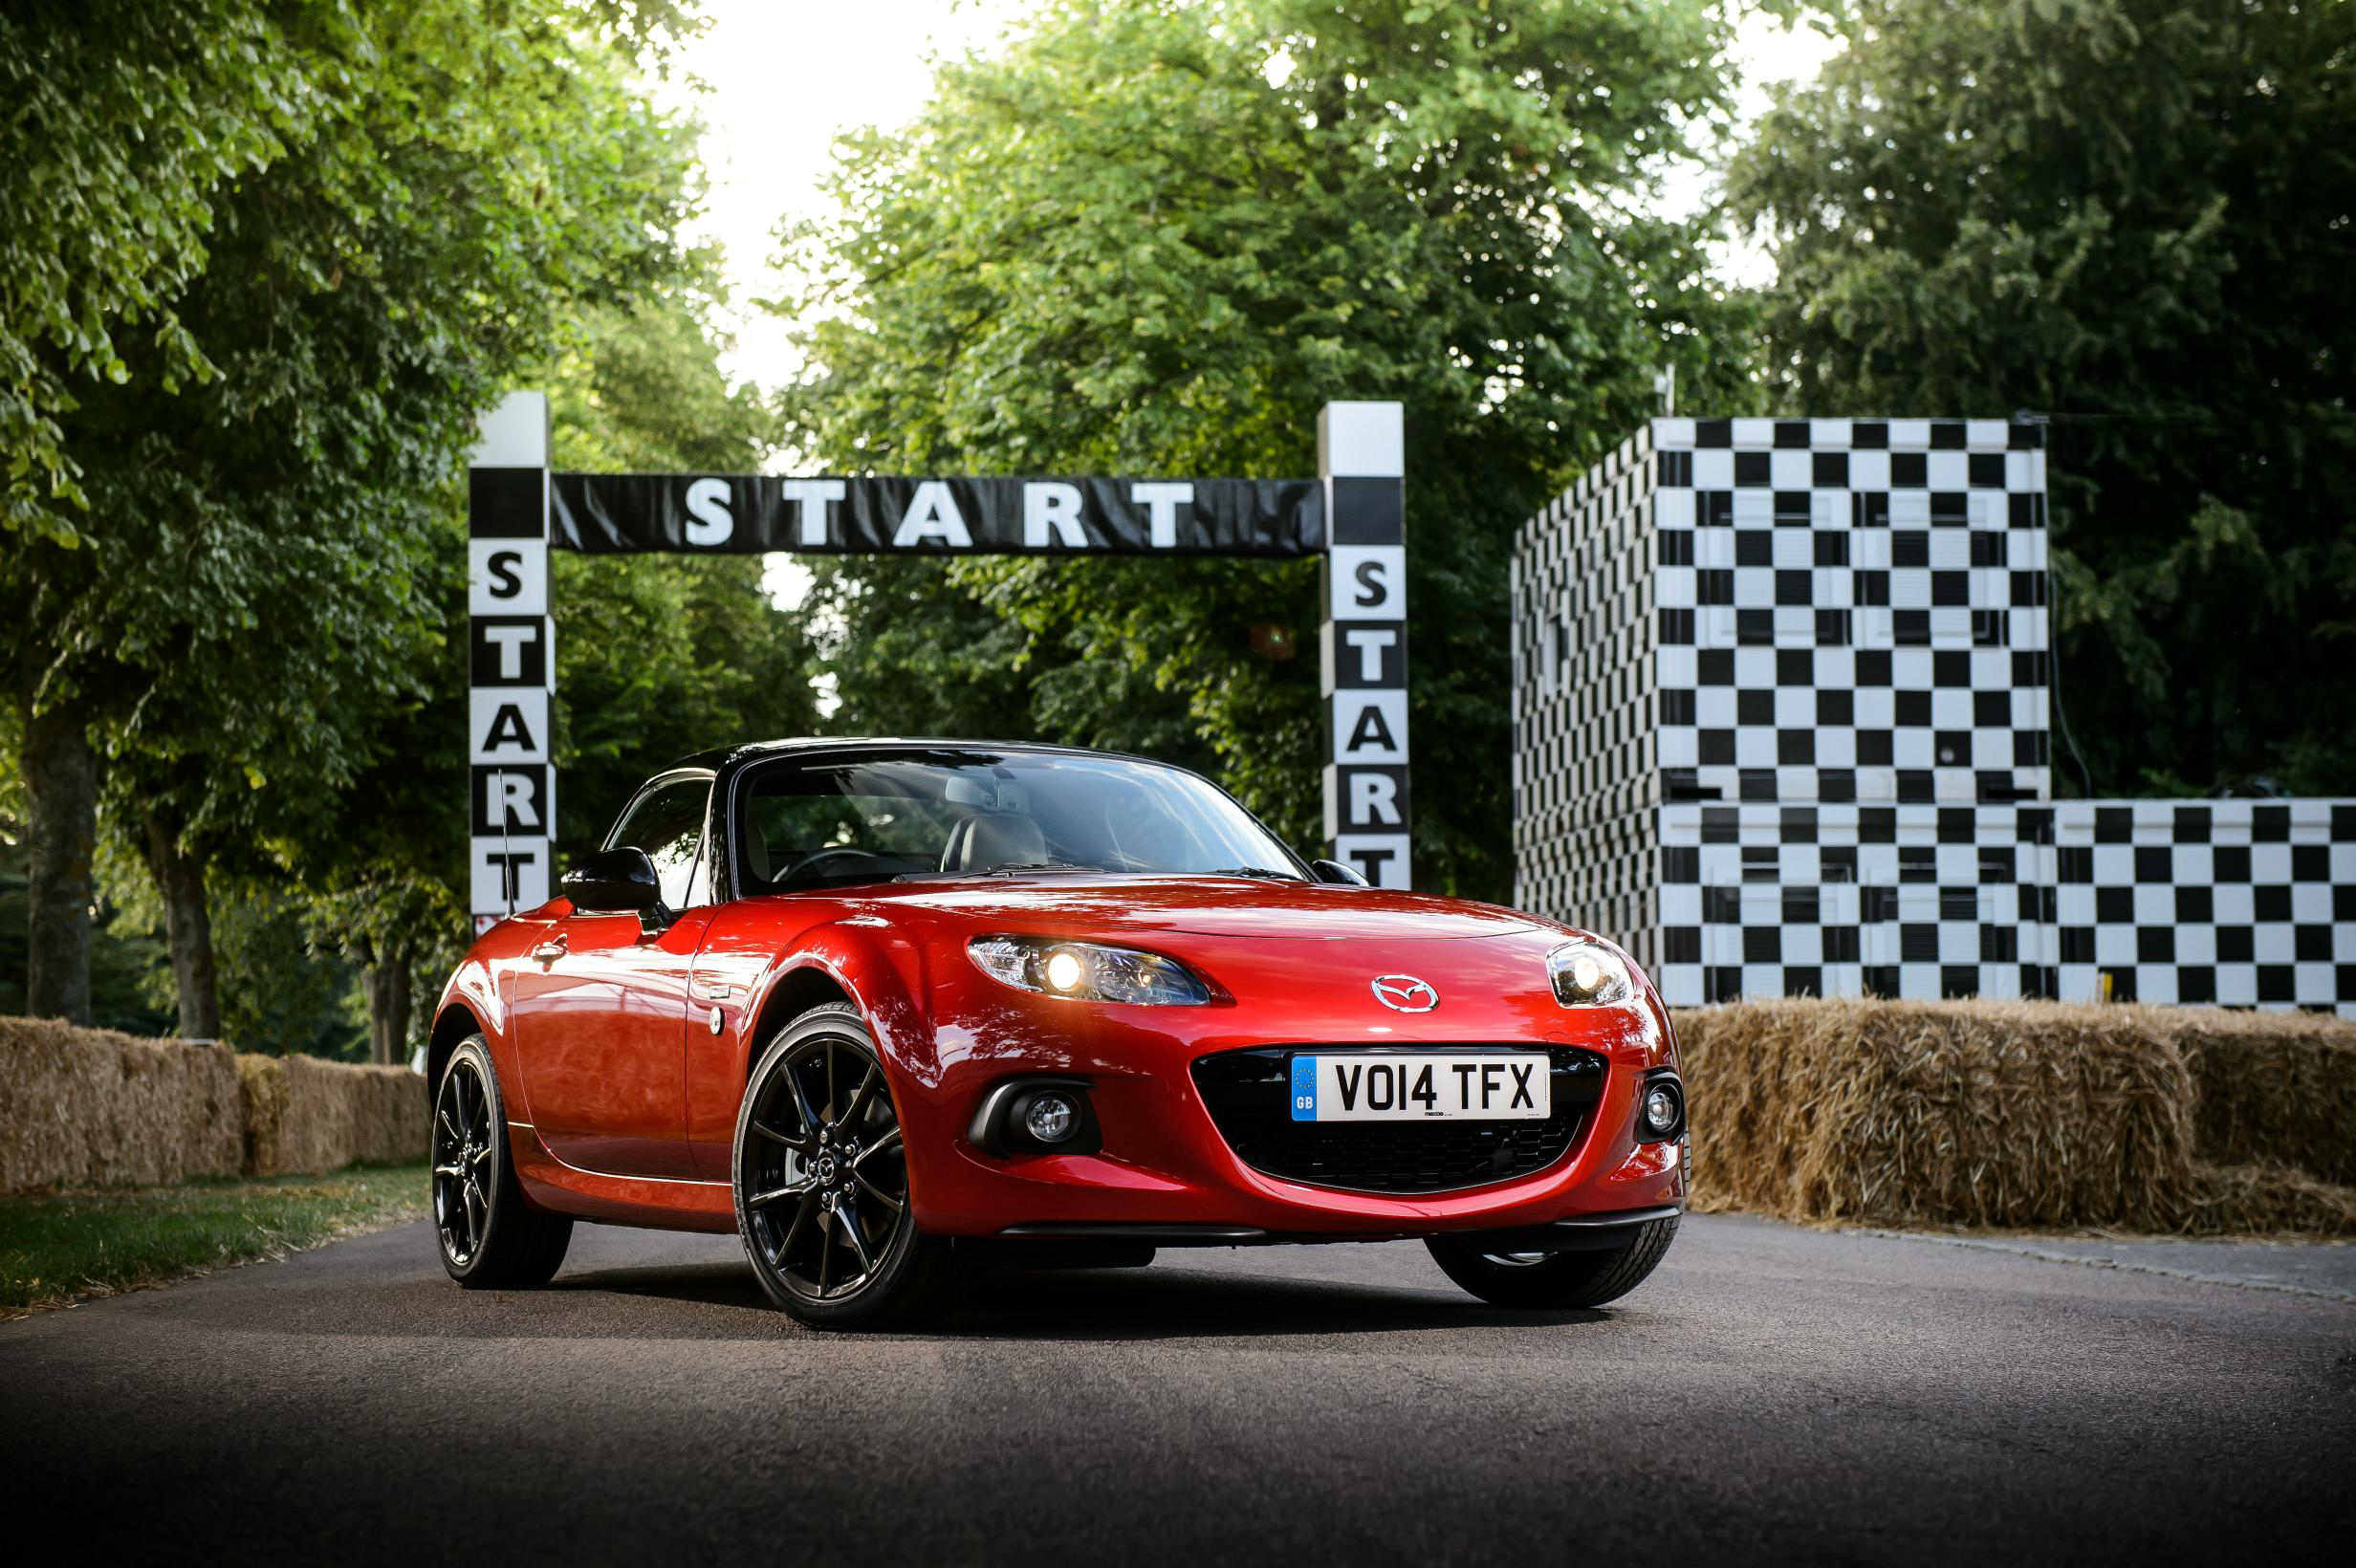 image of a red mazda mx 5 car exterior